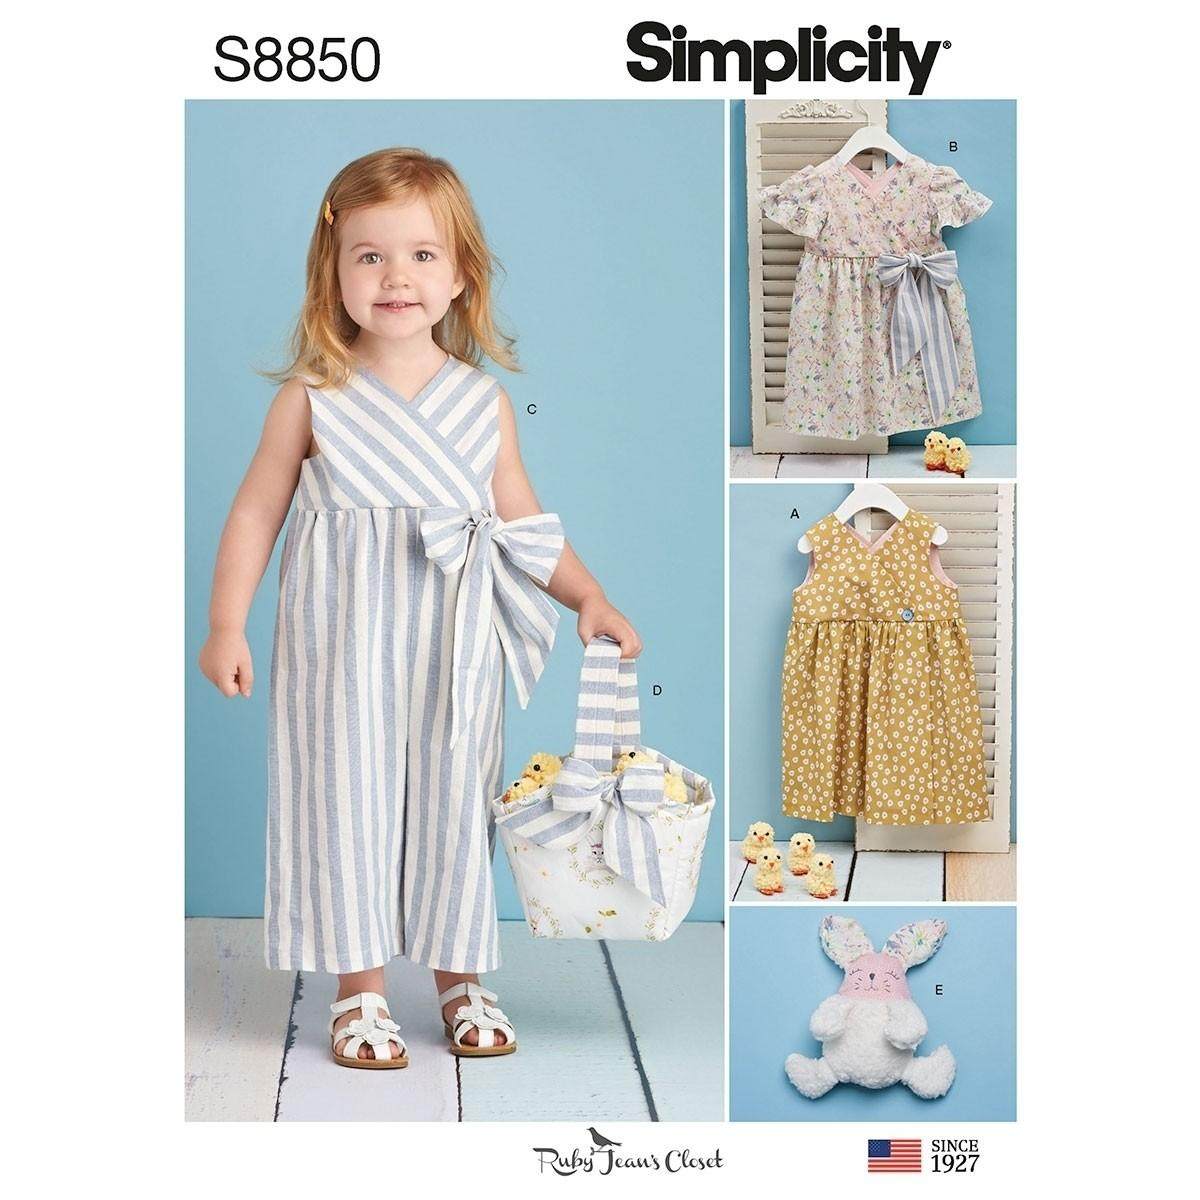 Simplicity S8850 Toddlers' Dress, Jumpsuit, Basket and Toy